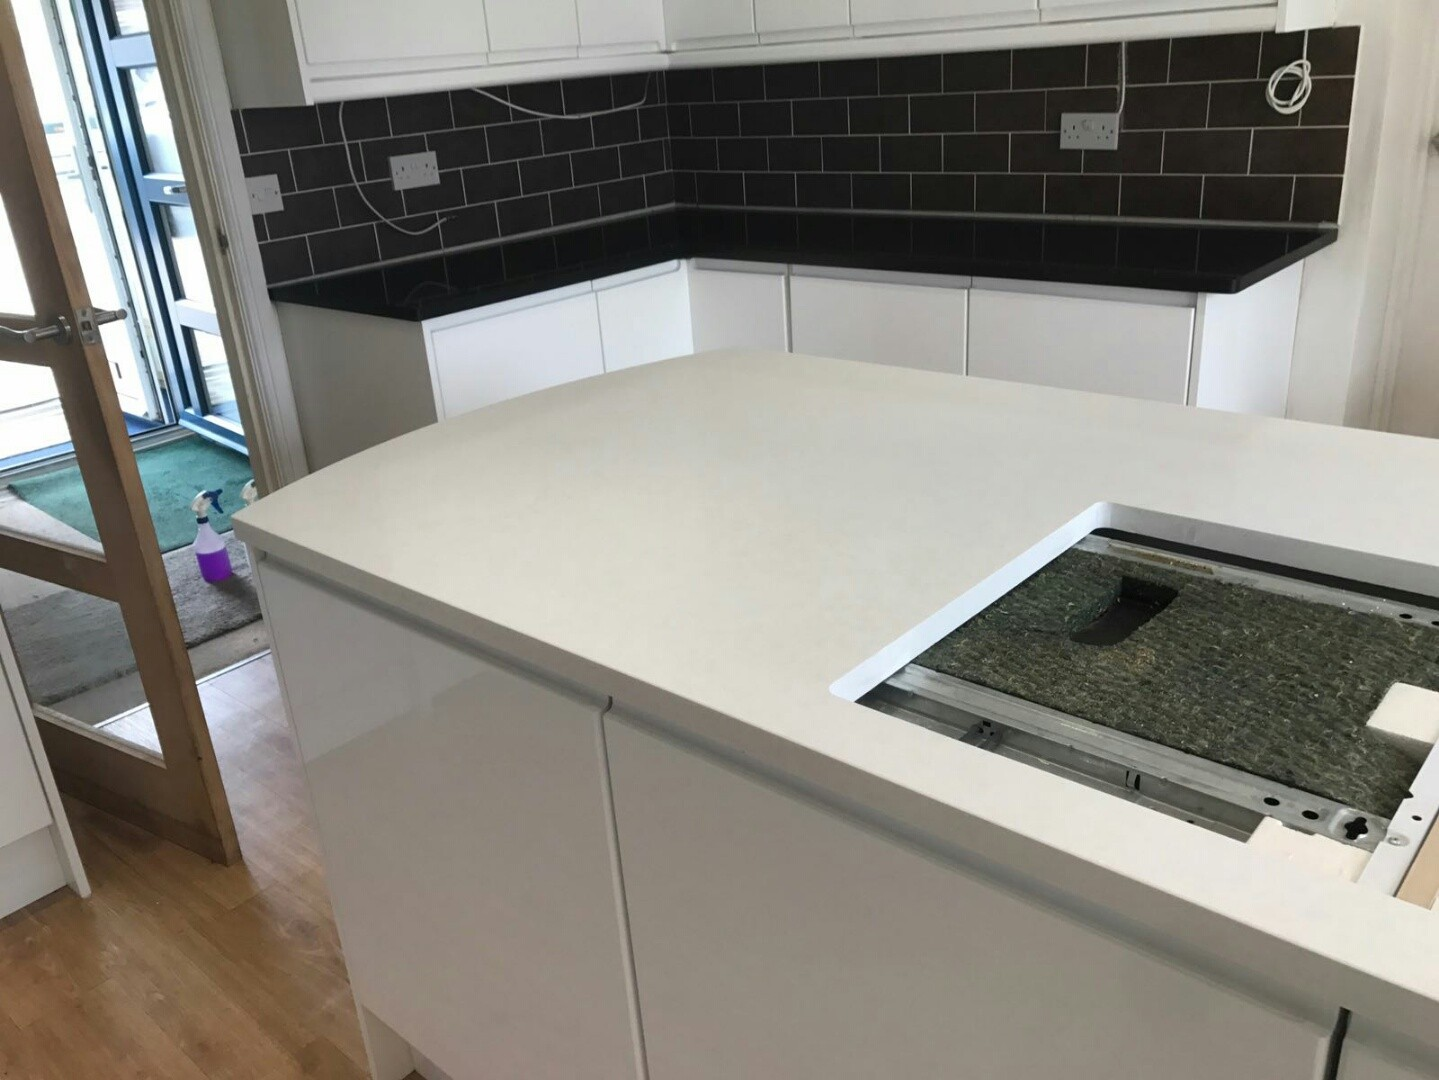 nero de lusso and bianco marmo suprema quartz worktops black and white combination